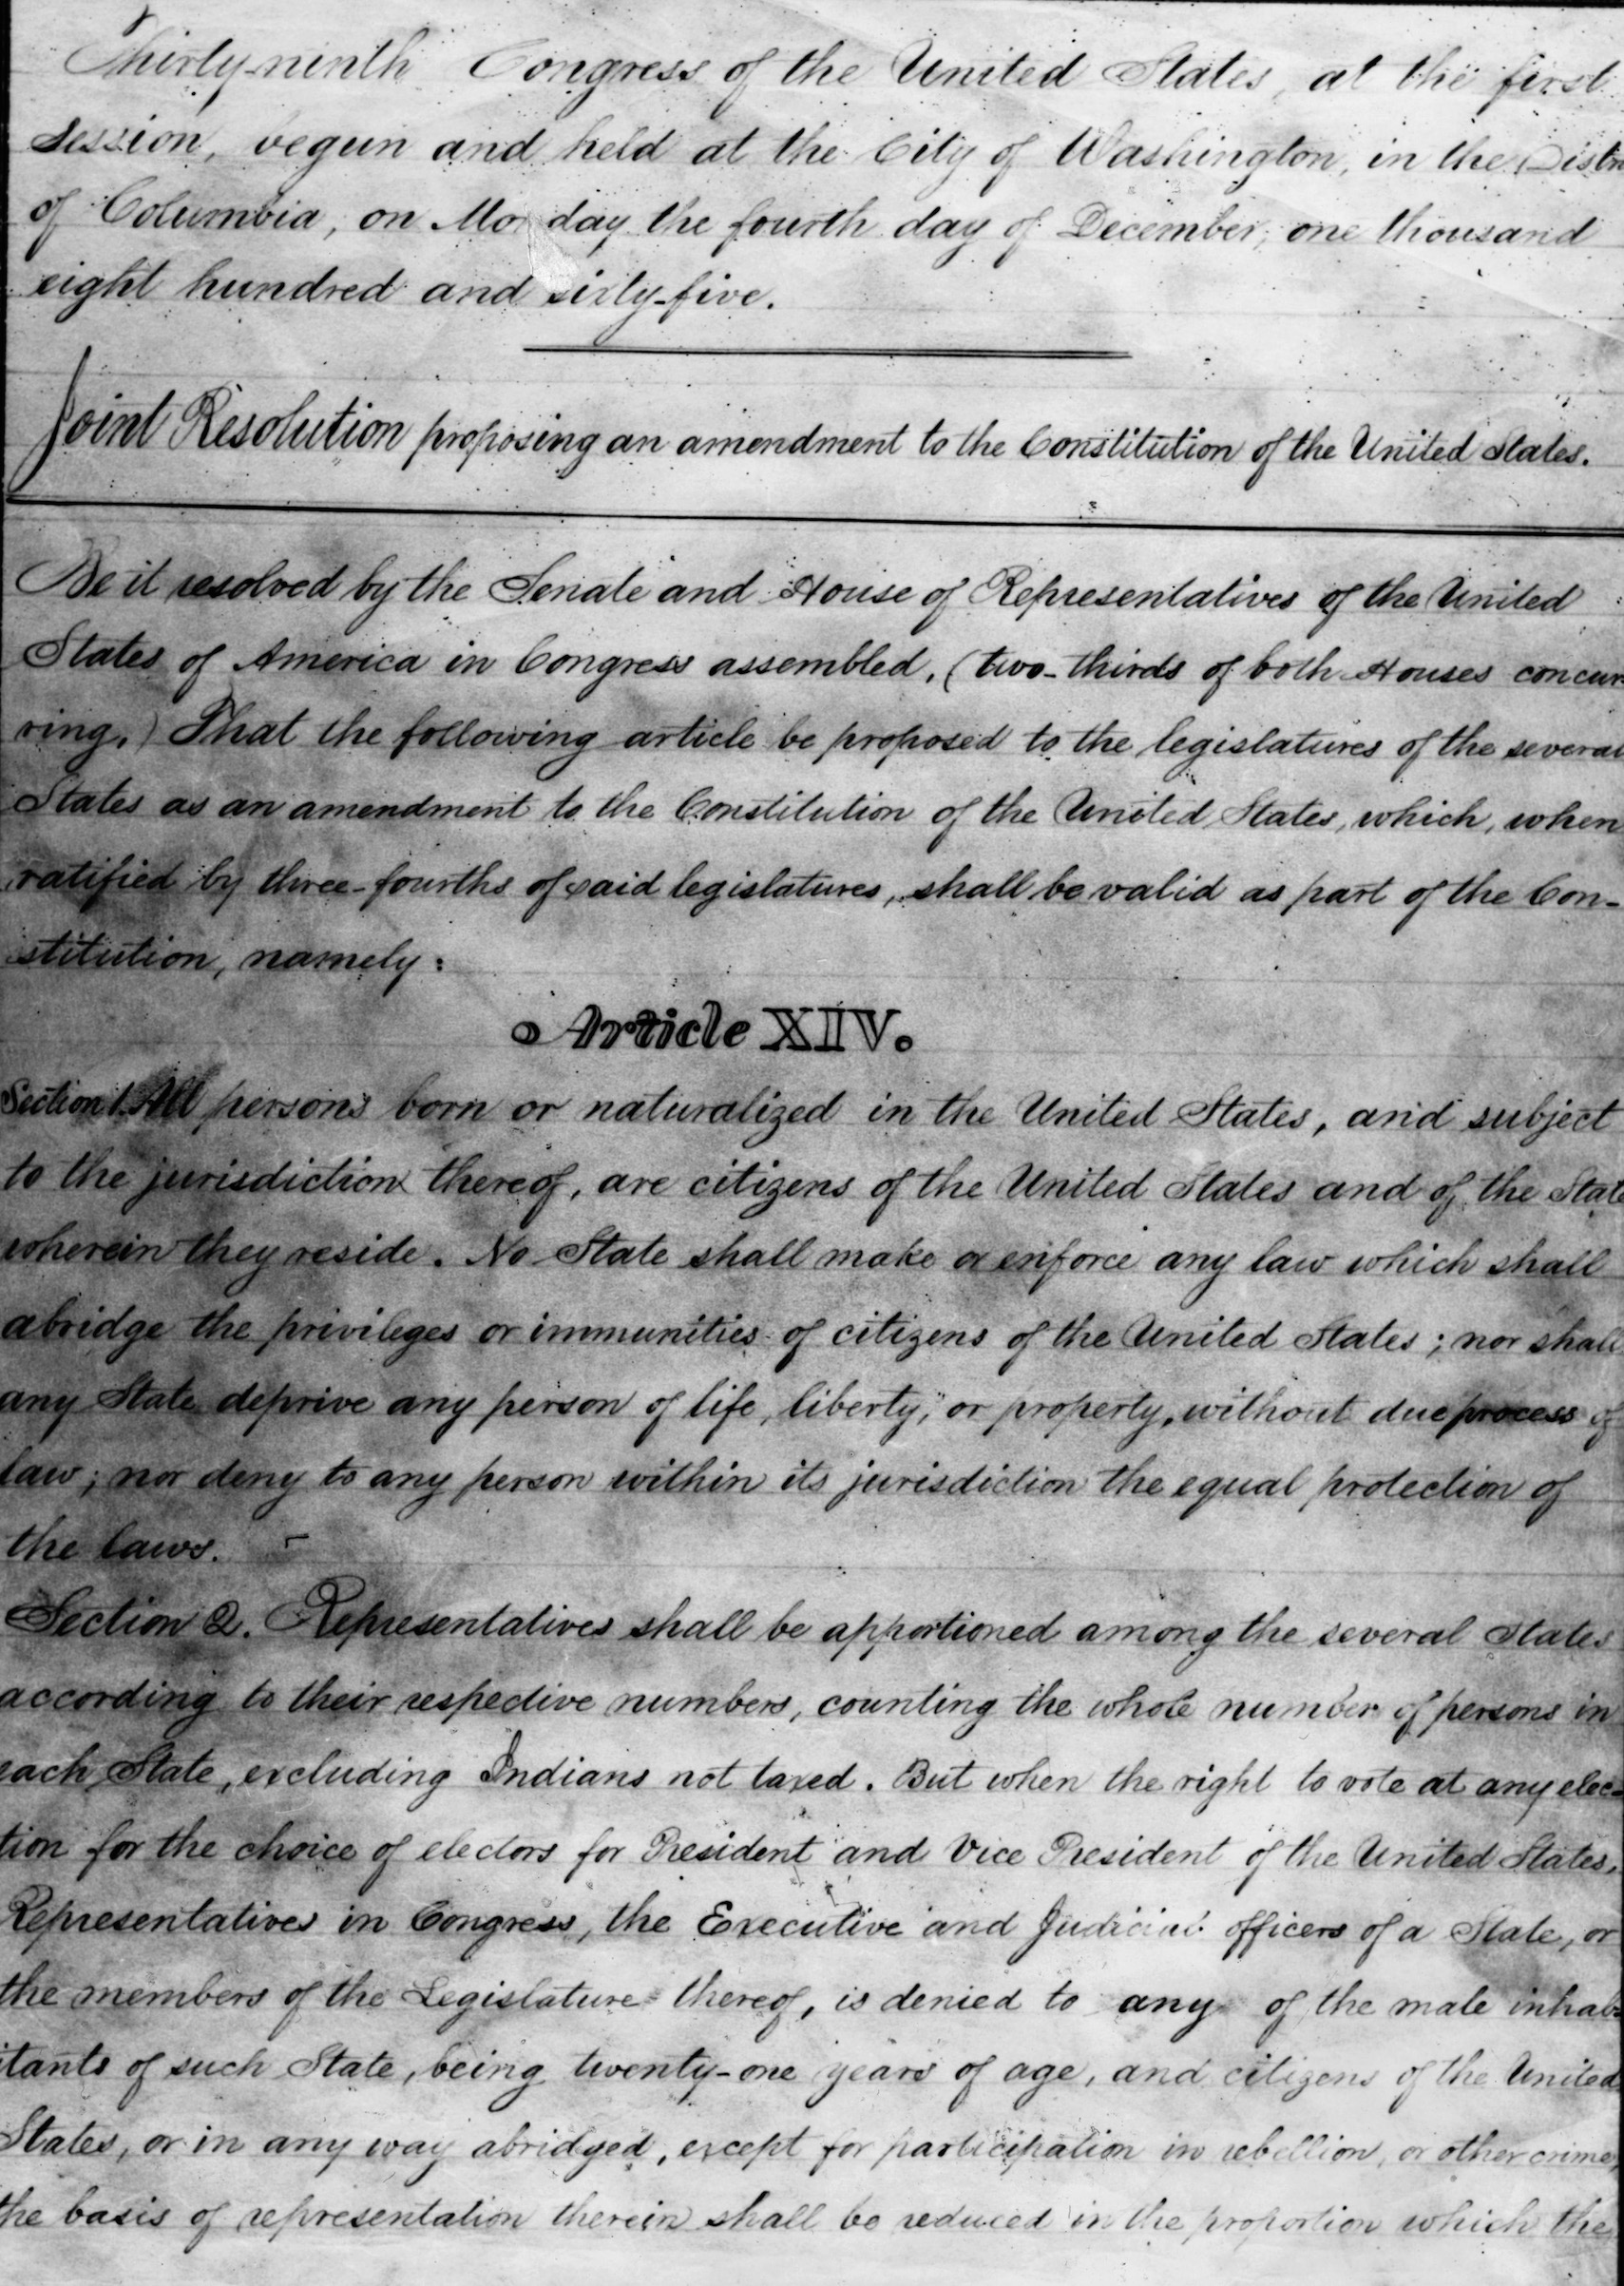 Draft of the 14th Amendment to the United States Constitution, outlining the rights and privileges of American citizenship, ratified in 1868.